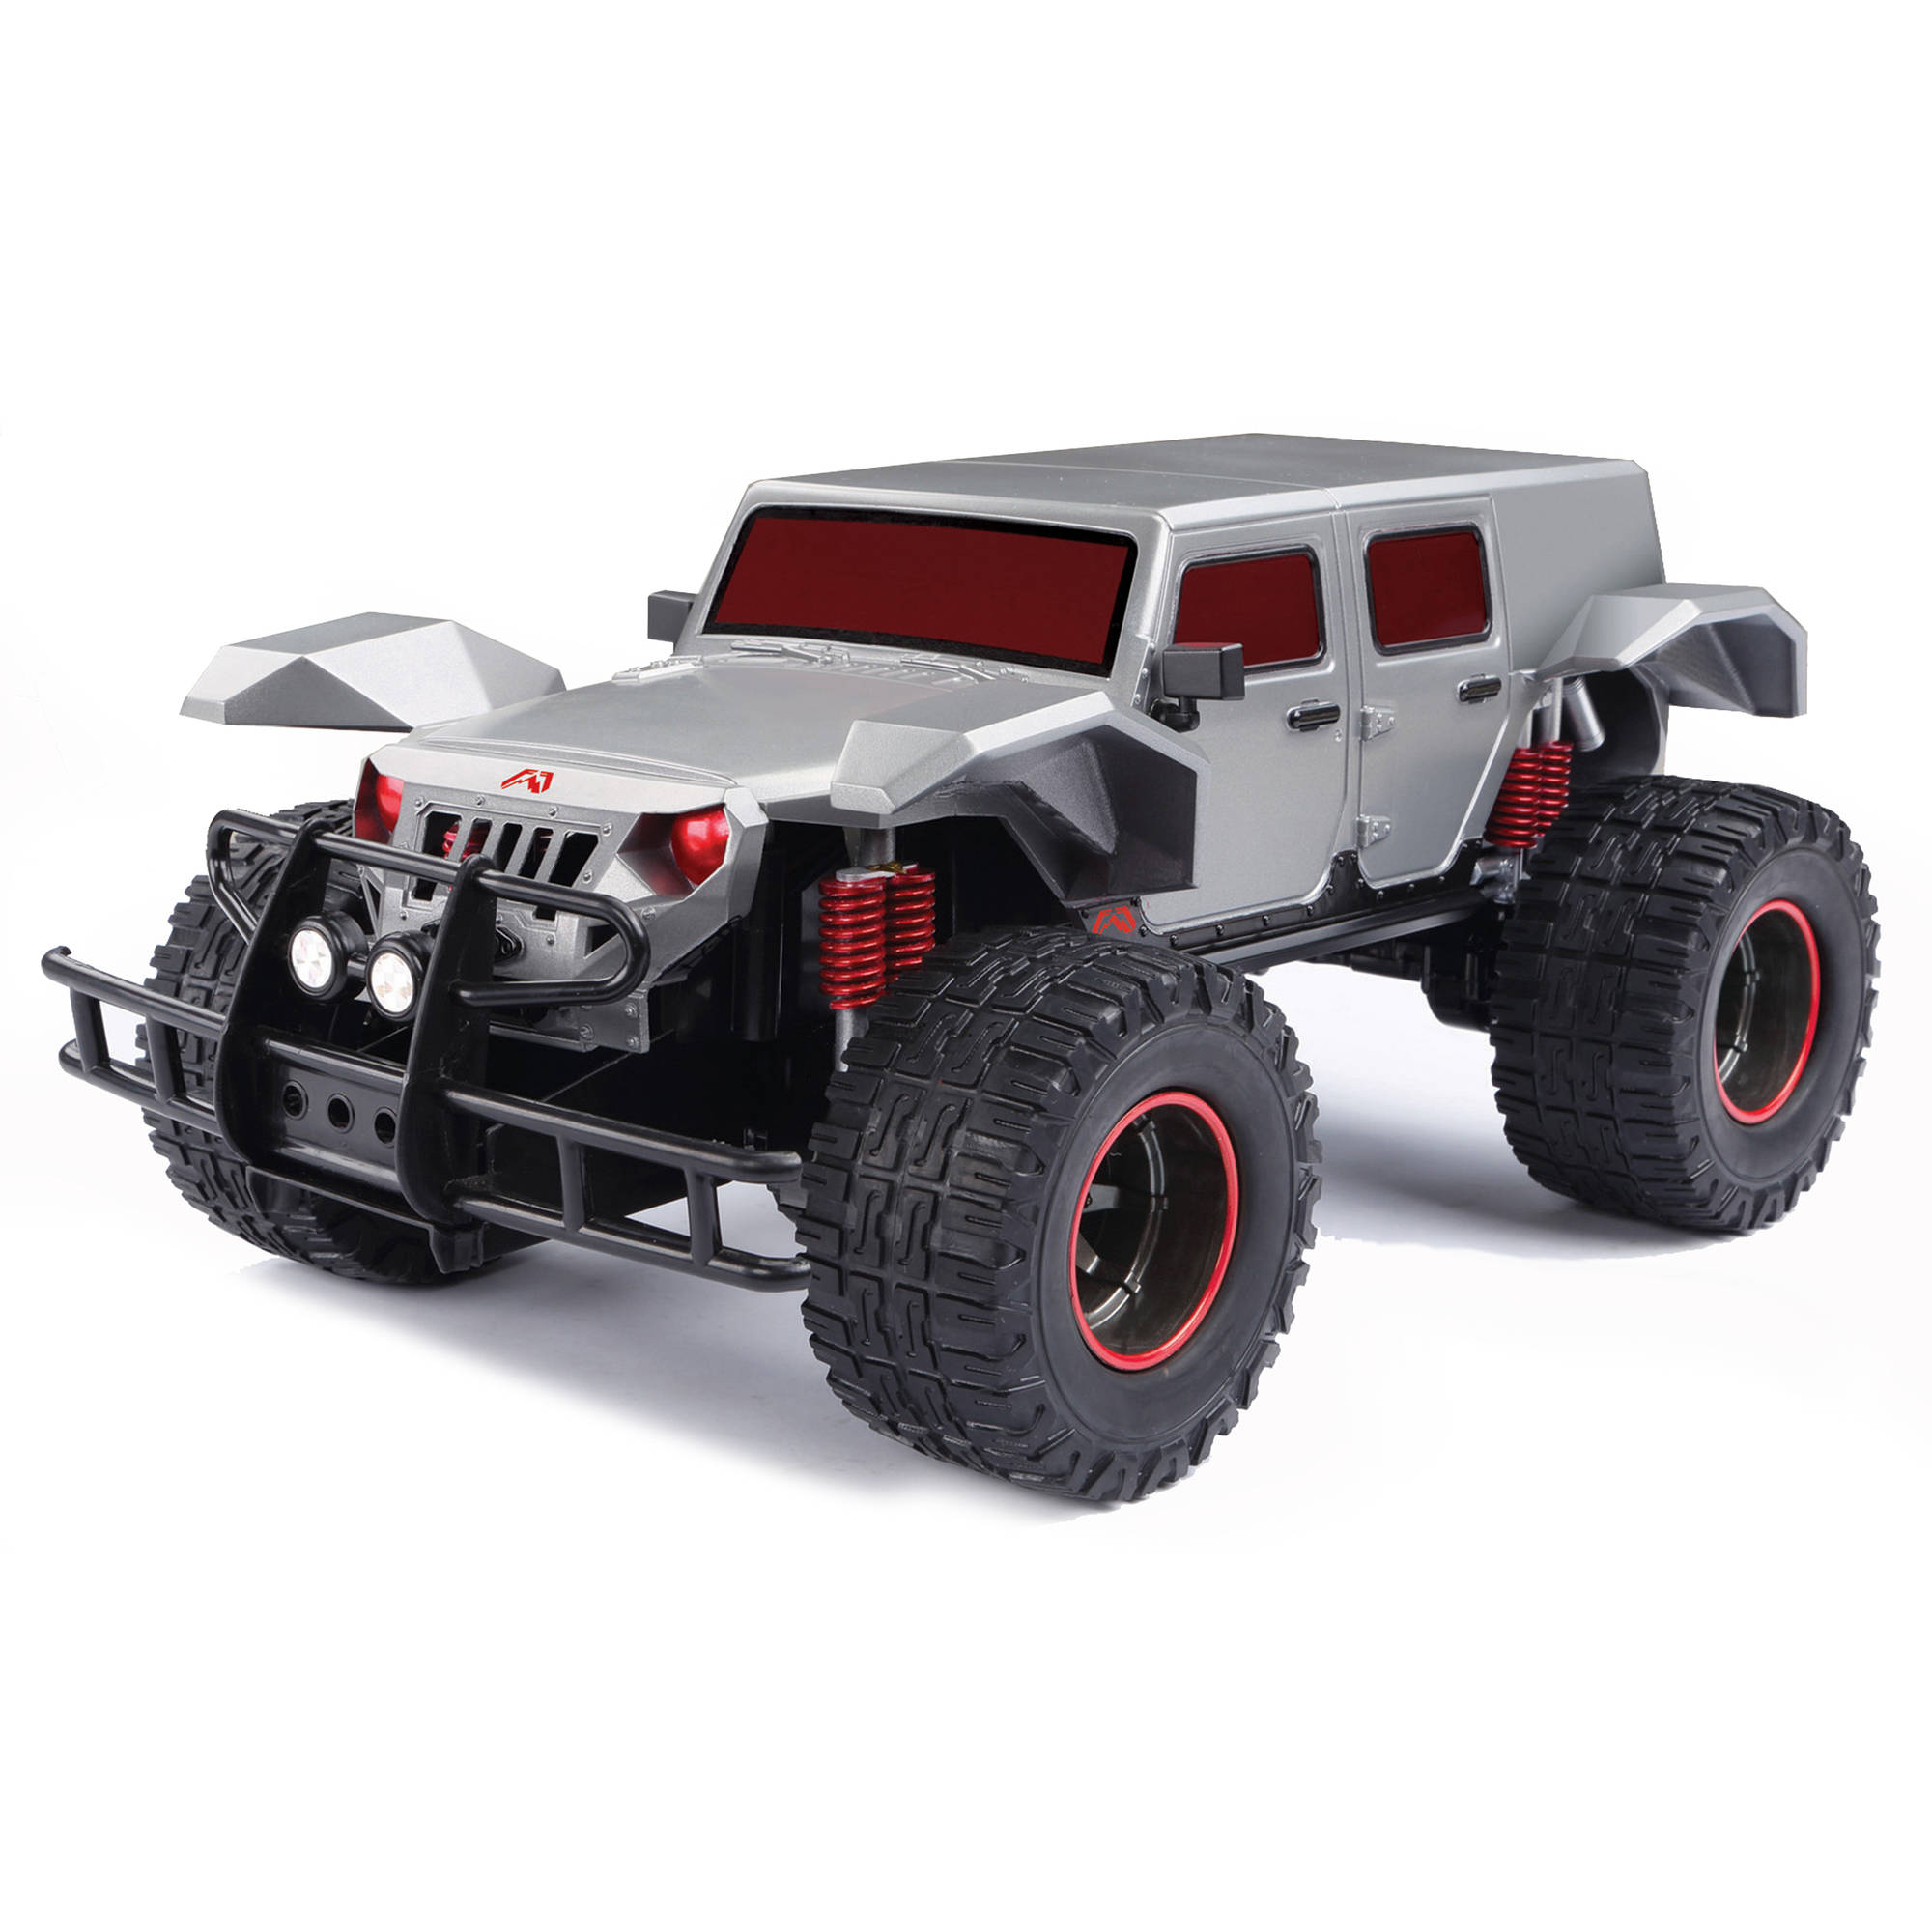 New Bright 1:10 Scale R/C Fab Fours Legends Truck, Silver